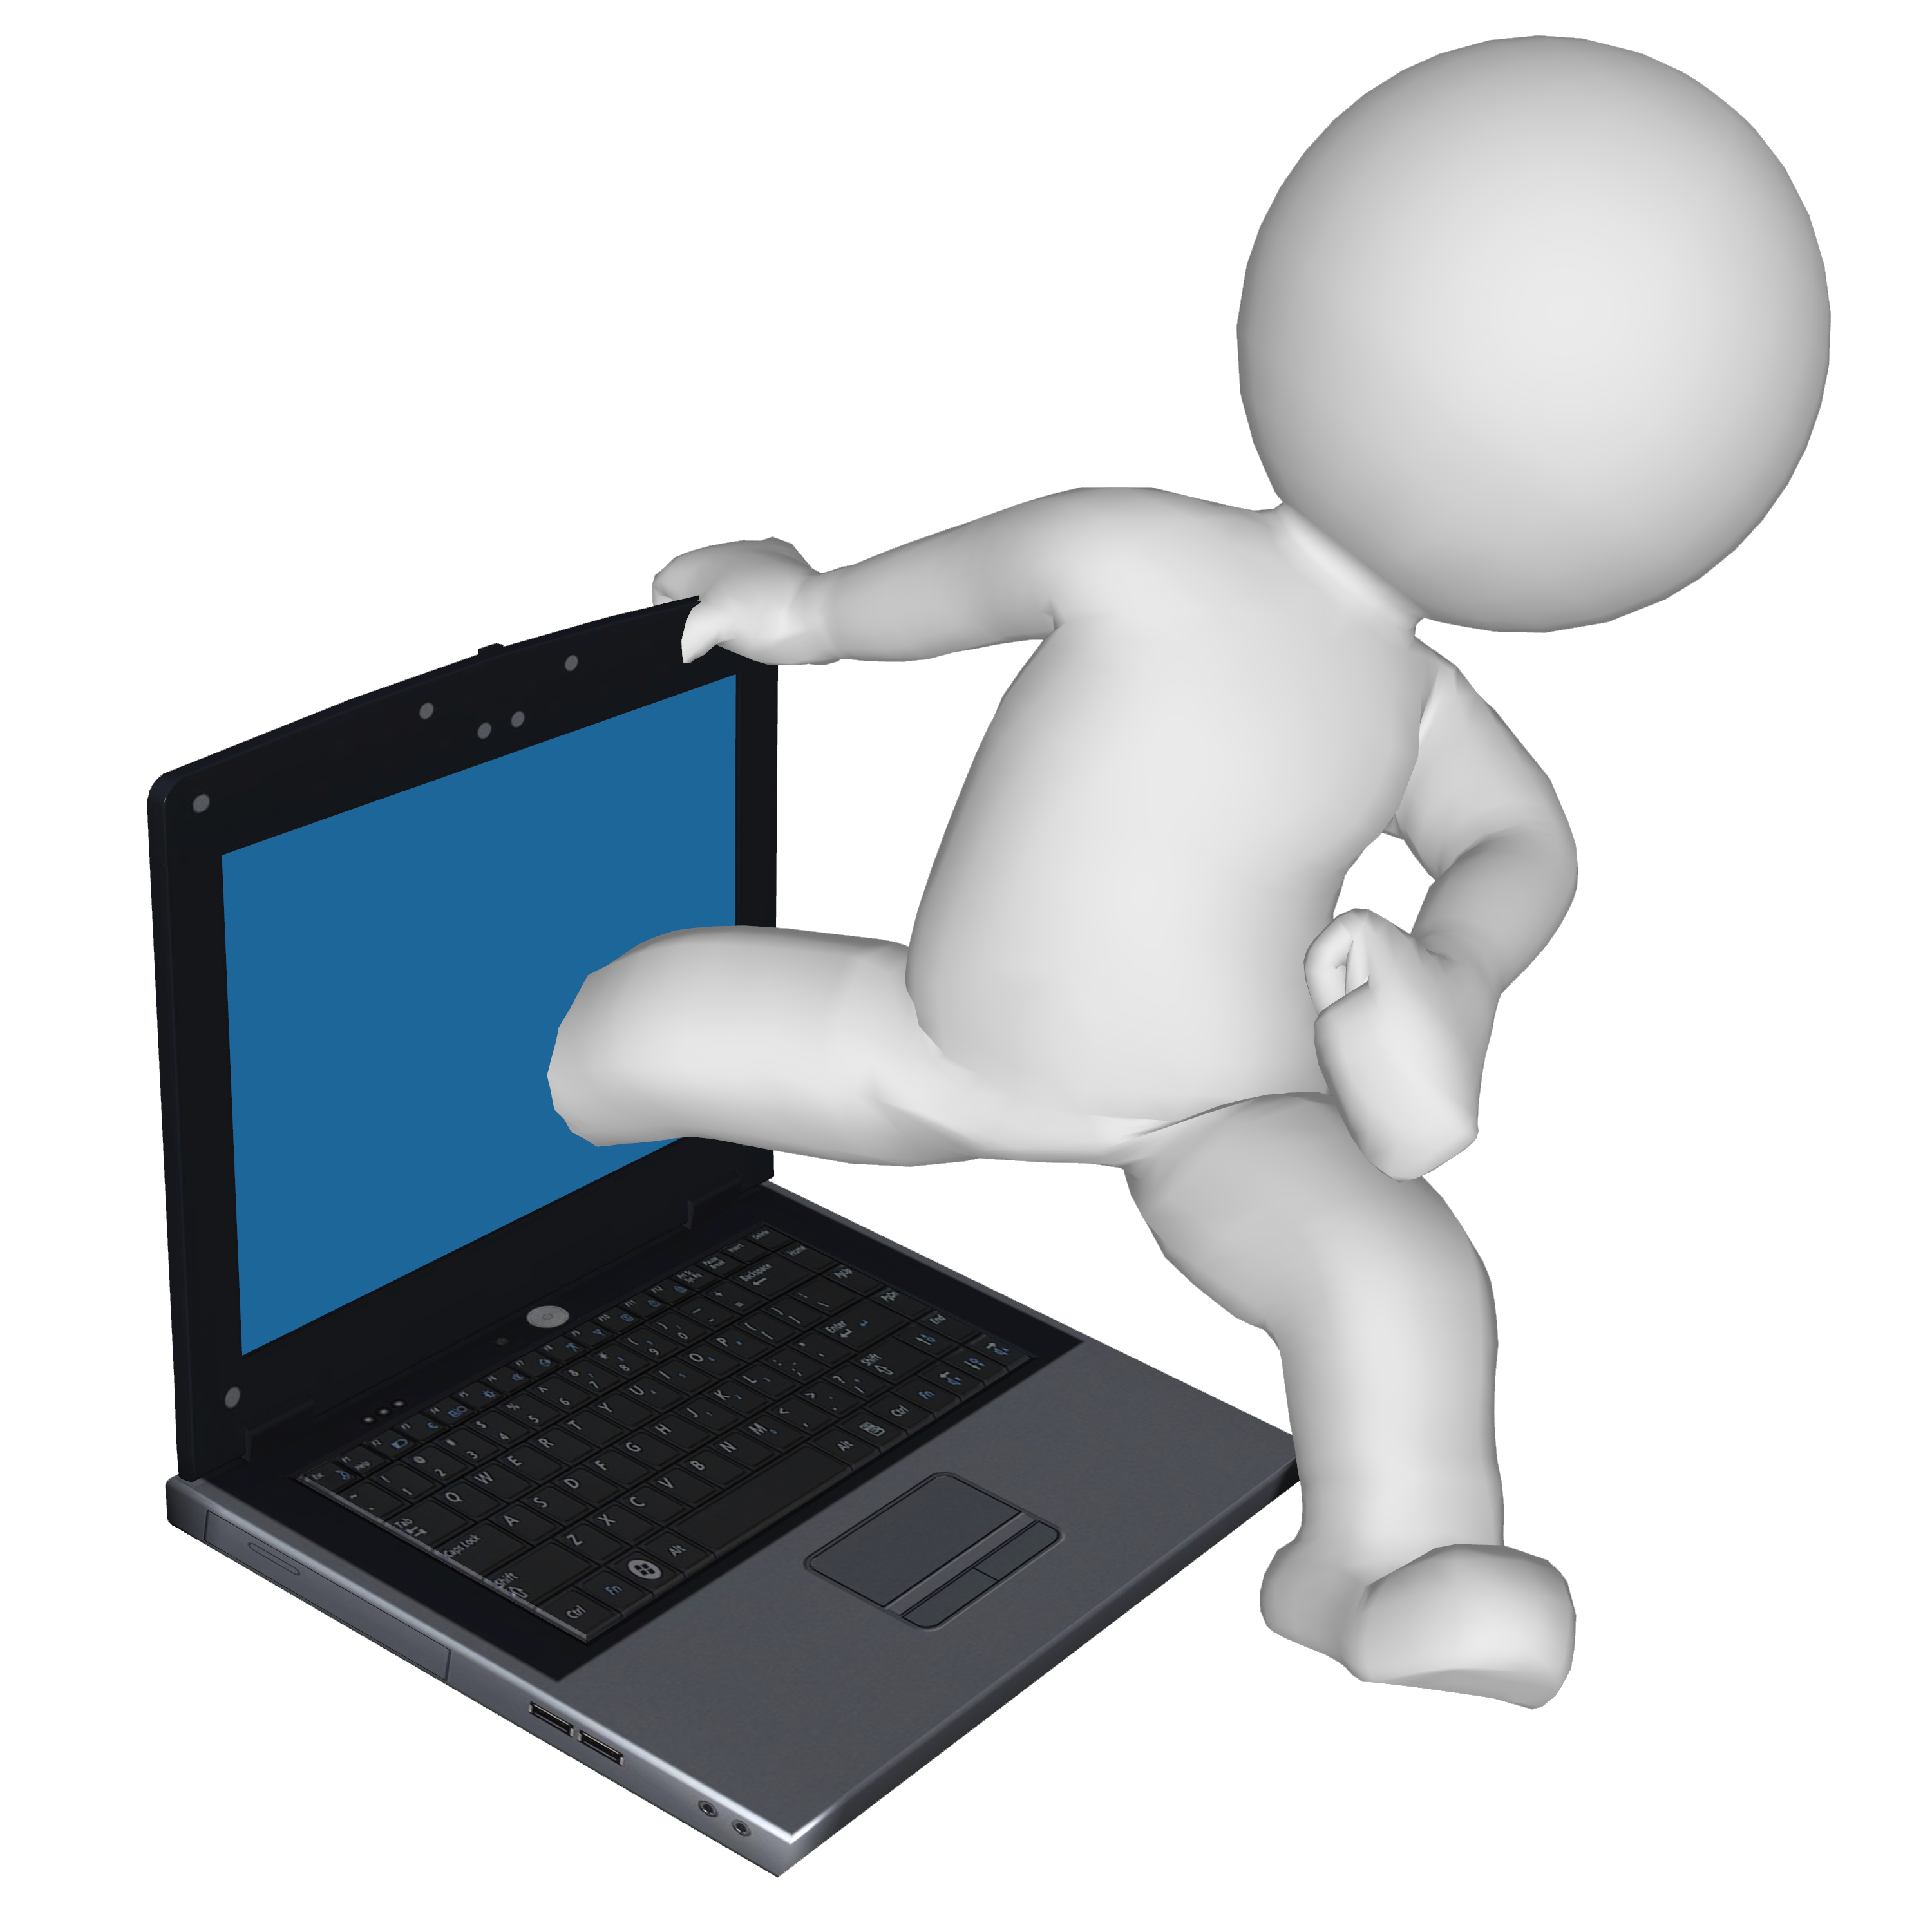 Computer images panda free. Computers clipart animated